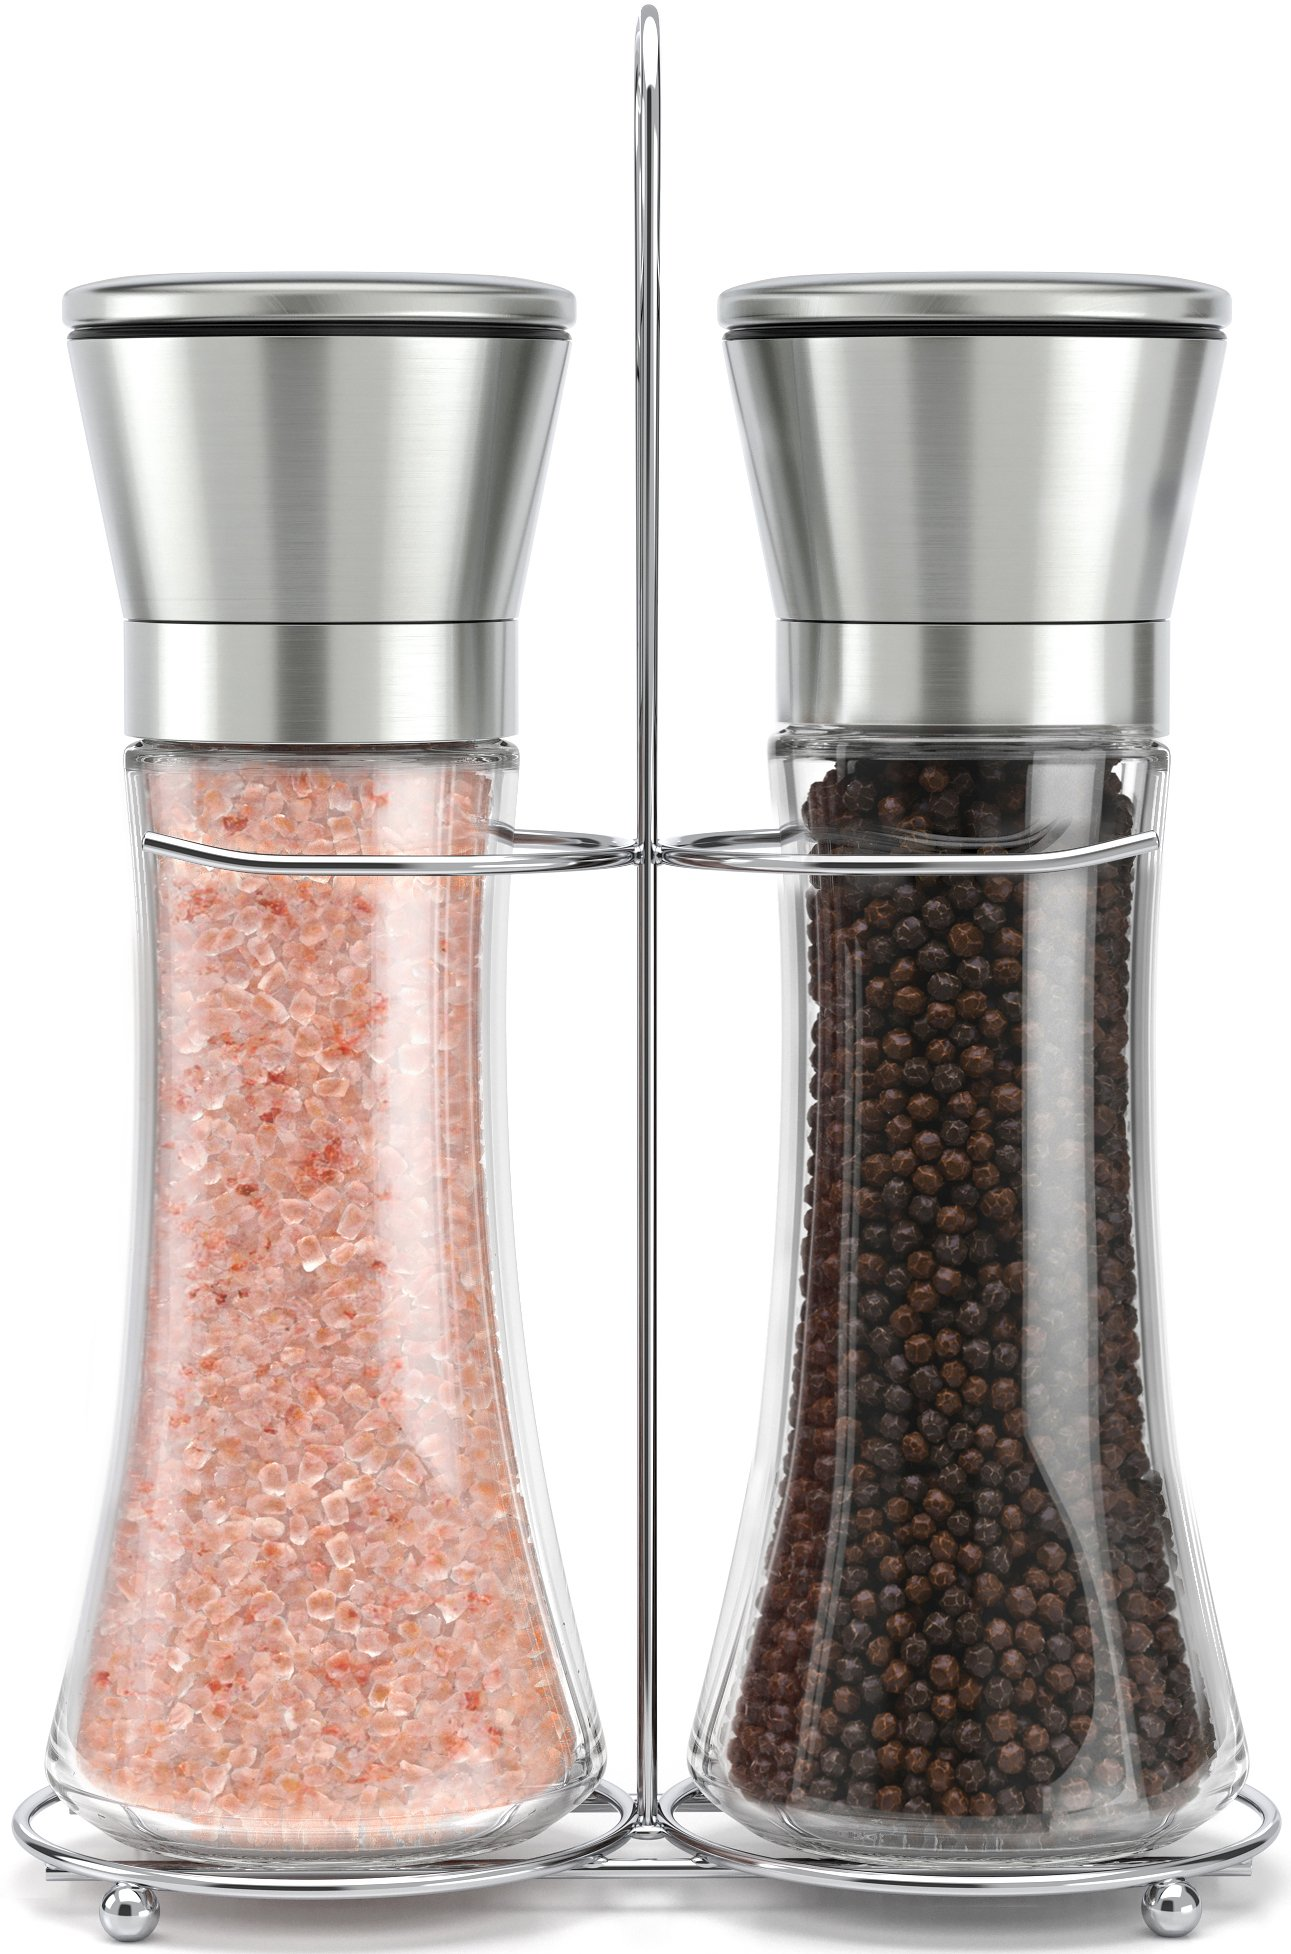 Original Stainless Steel Salt and Pepper Grinder Set With Stand - Tall Salt and Pepper Shakers with Adjustable Coarseness - Salt Grinders and Pepper Mill Shaker Set by Willow & Everett